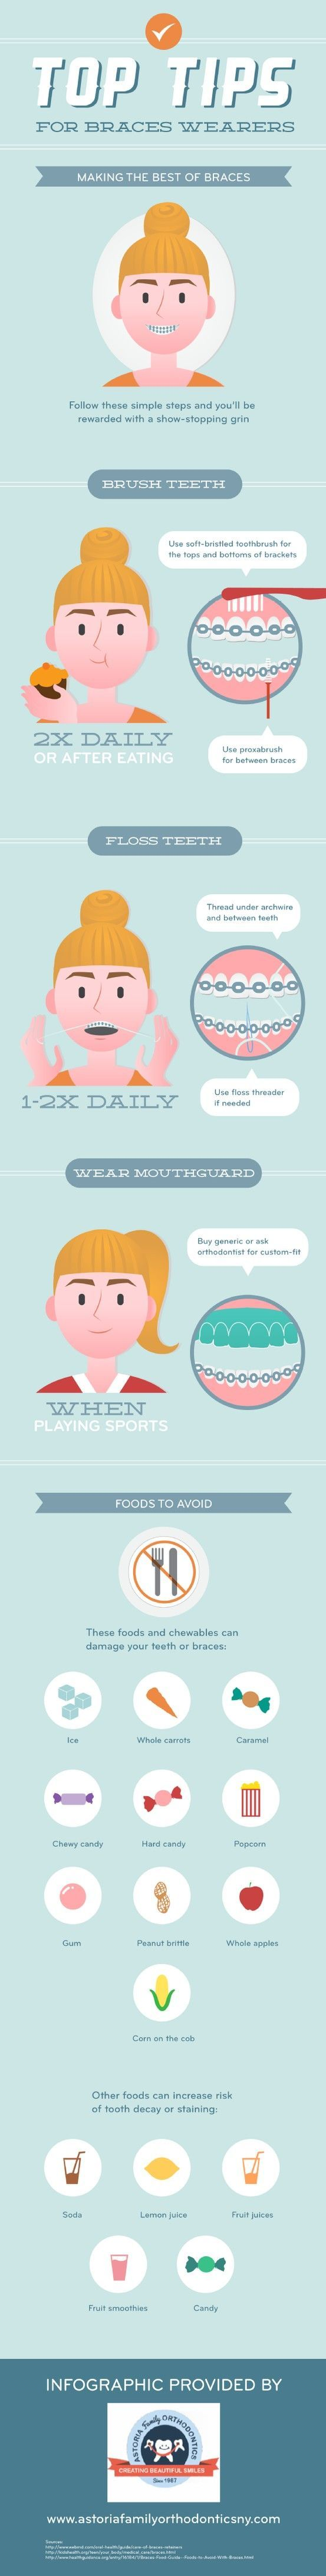 When you have braces, it is important to floss your teeth once or twice a day. Pay attention to the areas under the archwire and the space between your teeth. For more information on oral care, check out this infographic from Woodside's Astoria Family Orthodontics. #FrandsendDental